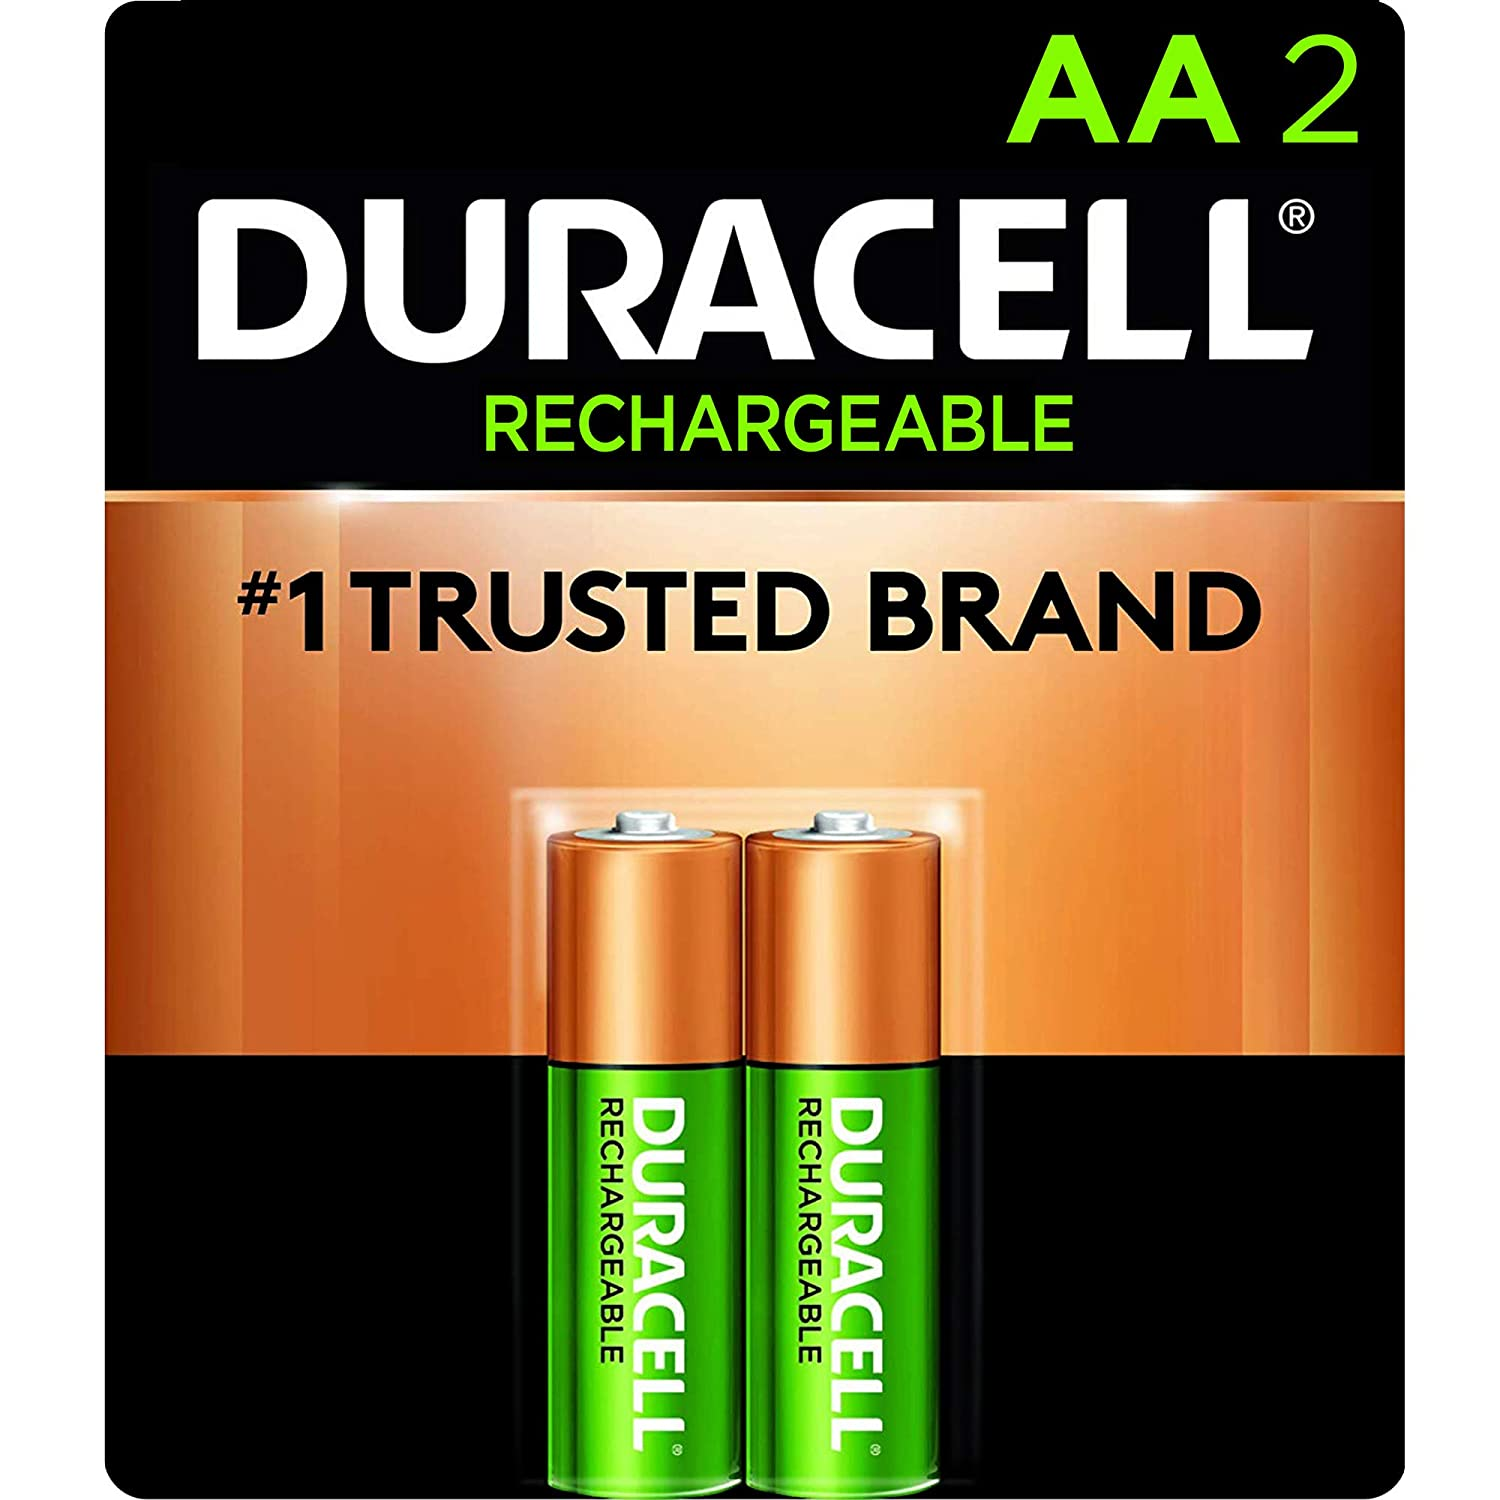 Amazon Com Duracell Rechargeable Aa Batteries Long Lasting All Purpose Double A Battery For Household And Business 2 Count Industrial Scientific